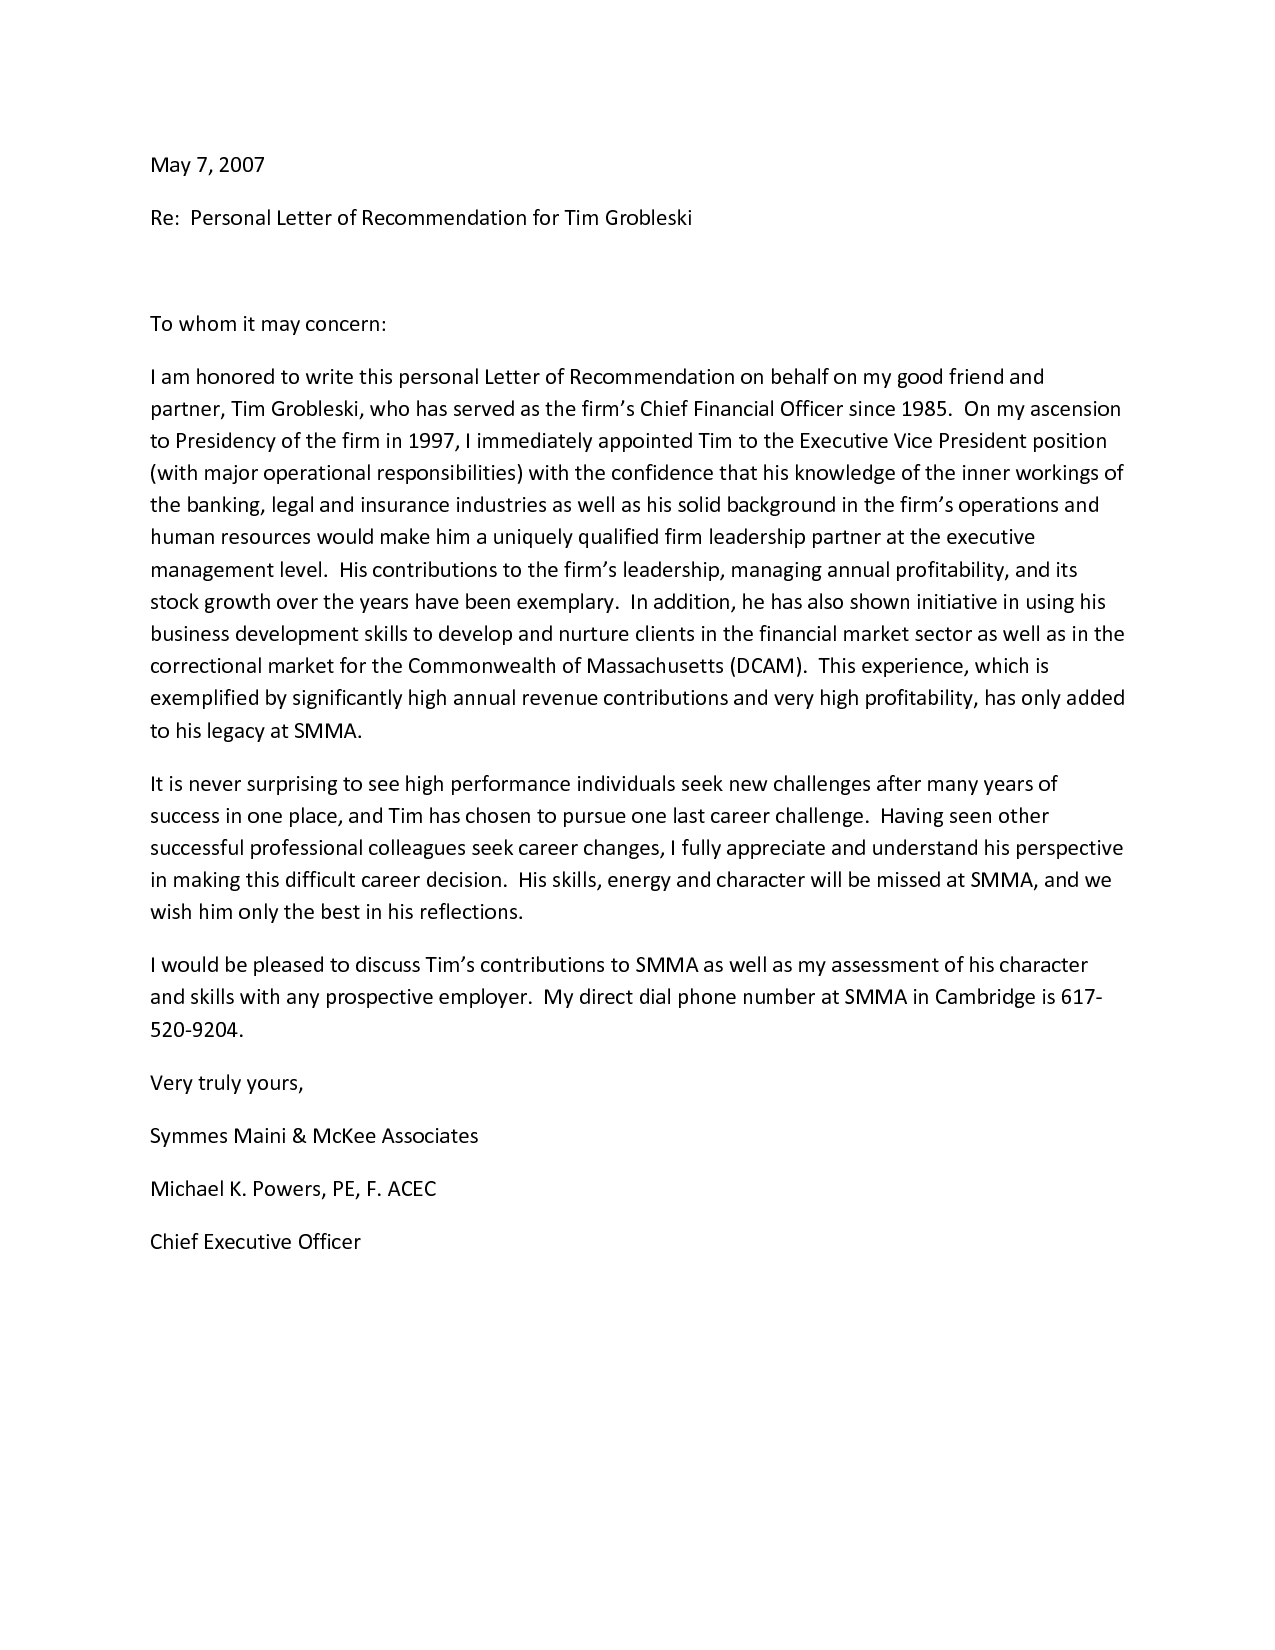 letters of recommendation for friends Recommendation Letter For A Friend Template SeeabruzzoPersonal ...